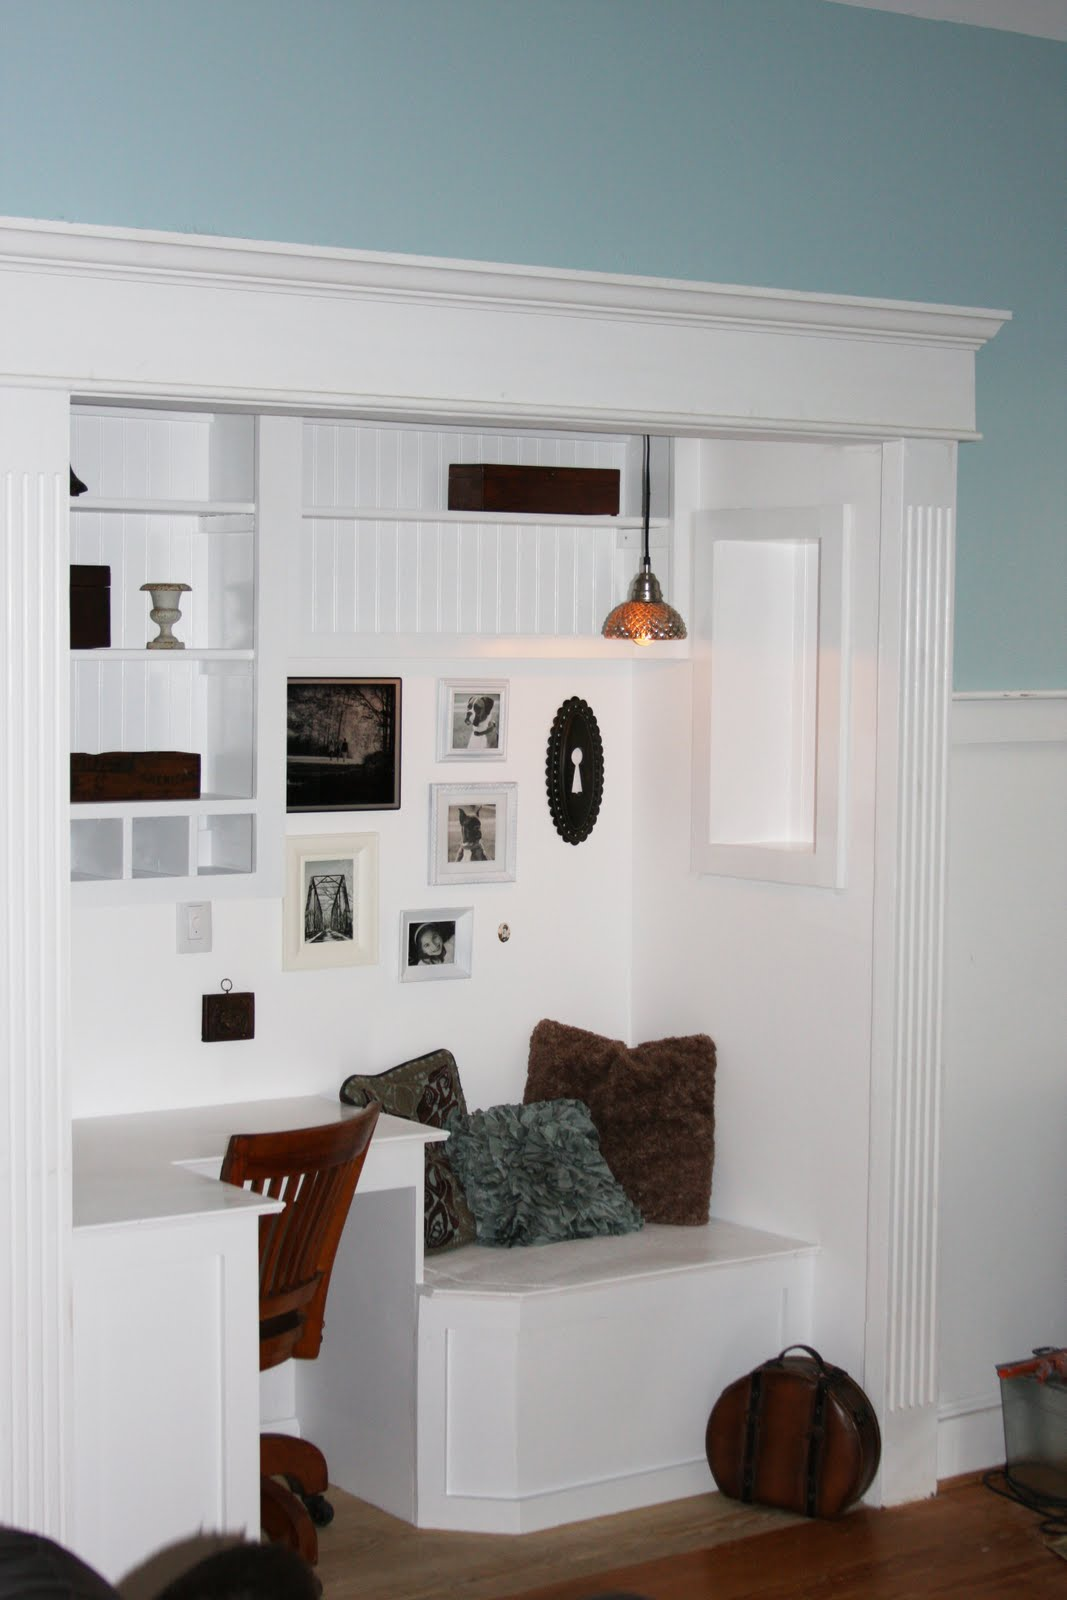 DIY: Build your own Office nook